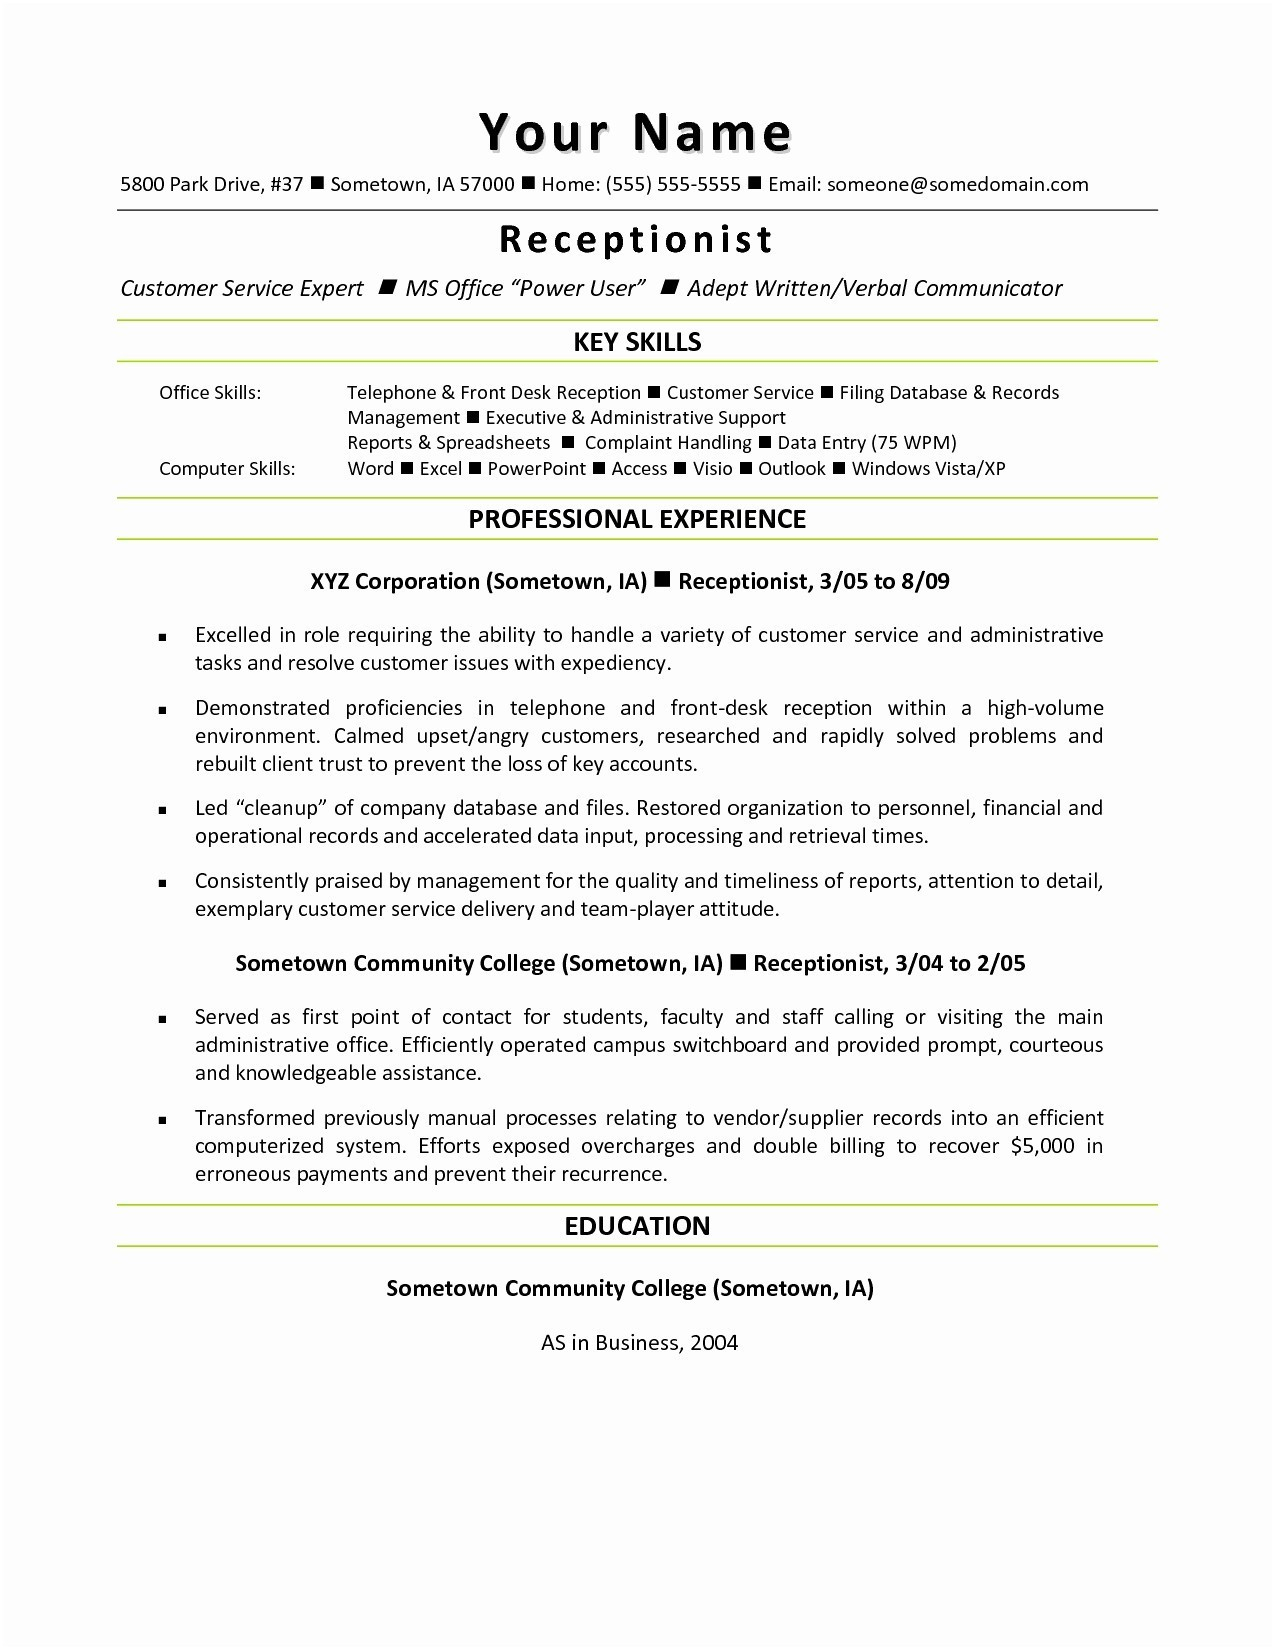 Certified Mail Letter Template - Resume Microsoft Word Fresh Resume Mail format Sample Fresh